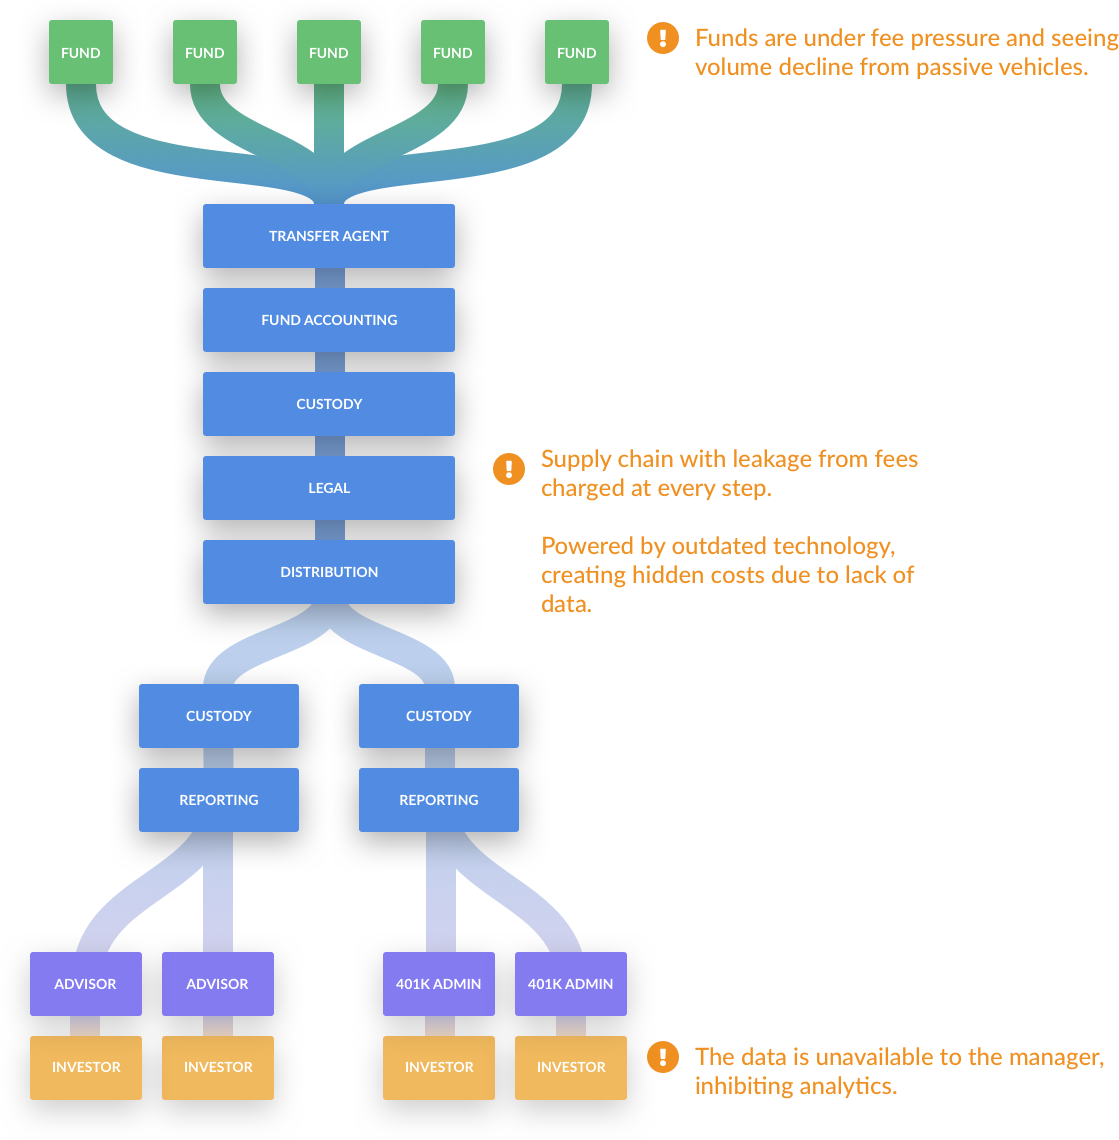 Mutual funds supply chain graph showing how the fund distributed to investors through transfer agent, fund accounting and custody intermediaries